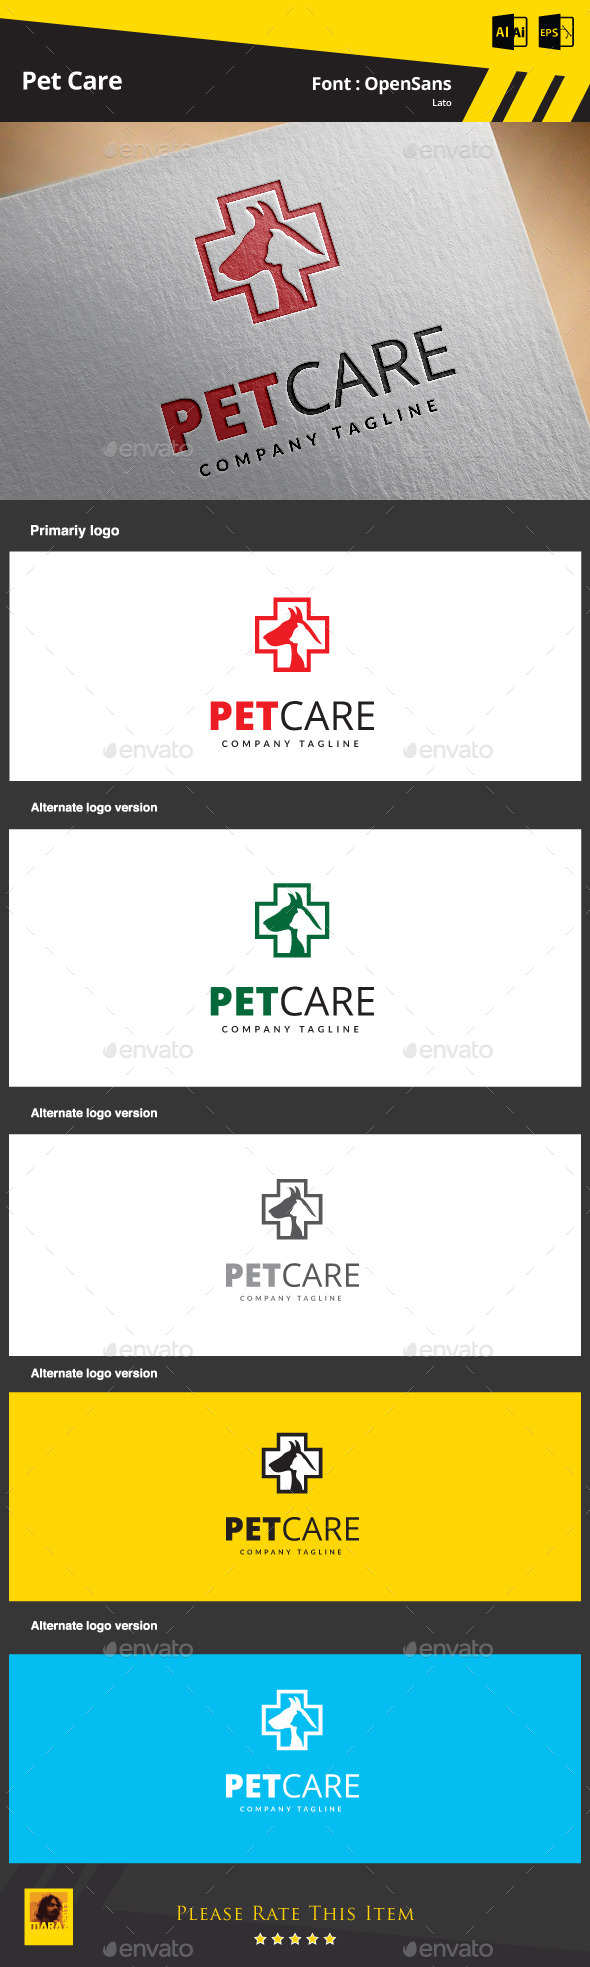 GraphicRiver Pet Care 9257324